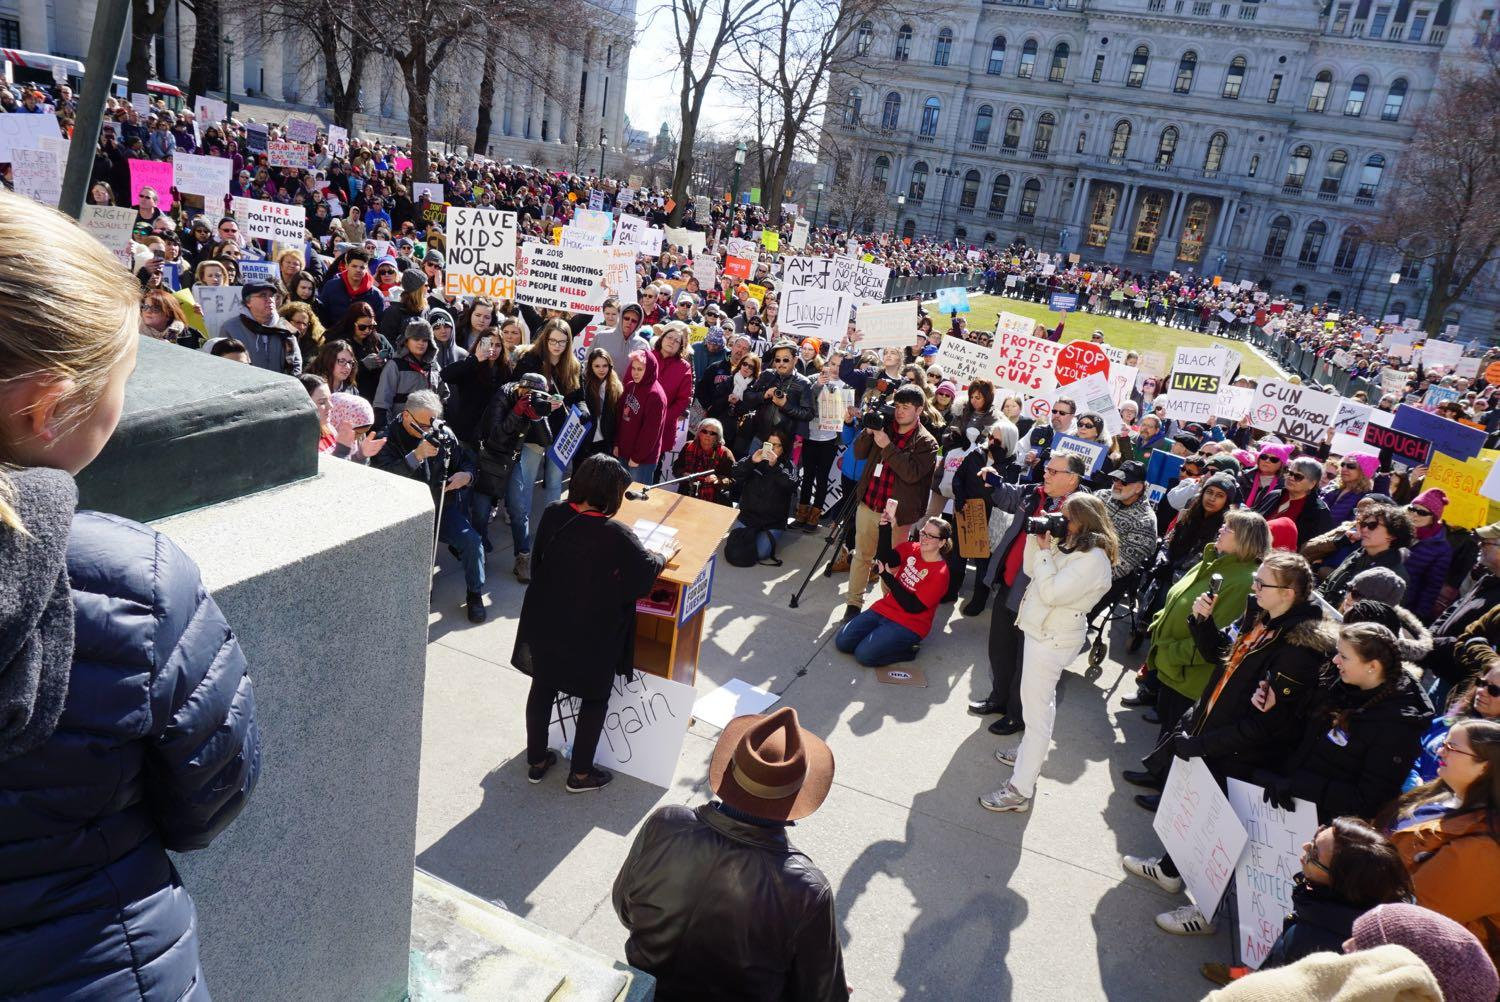 Albany March for Our Lives speaker crowd